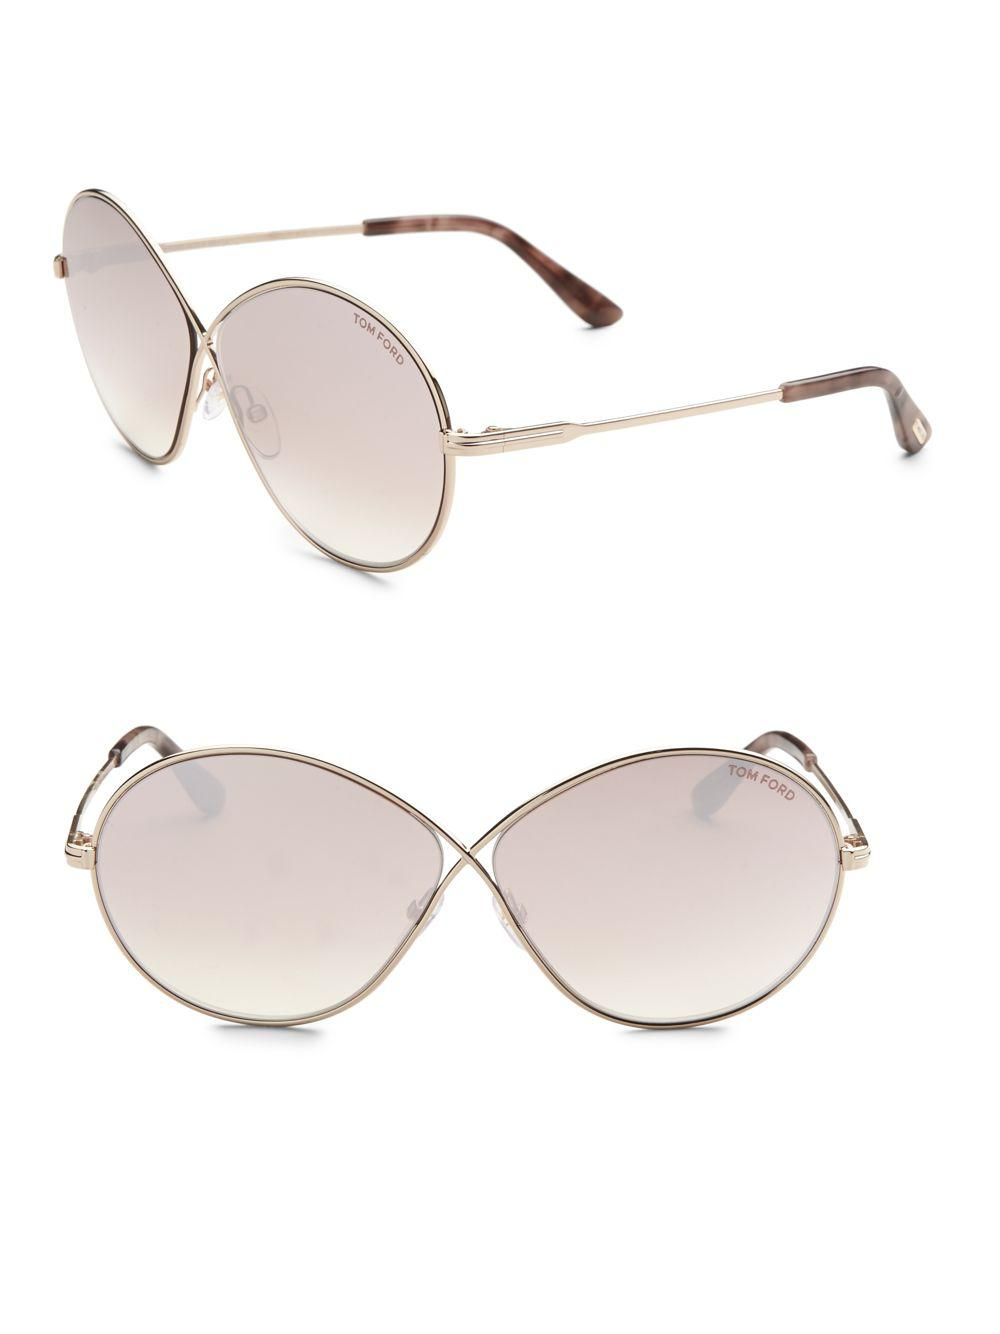 5770edce160d0 Tom Ford Rania 64mm Oval Sunglasses in Gray - Lyst